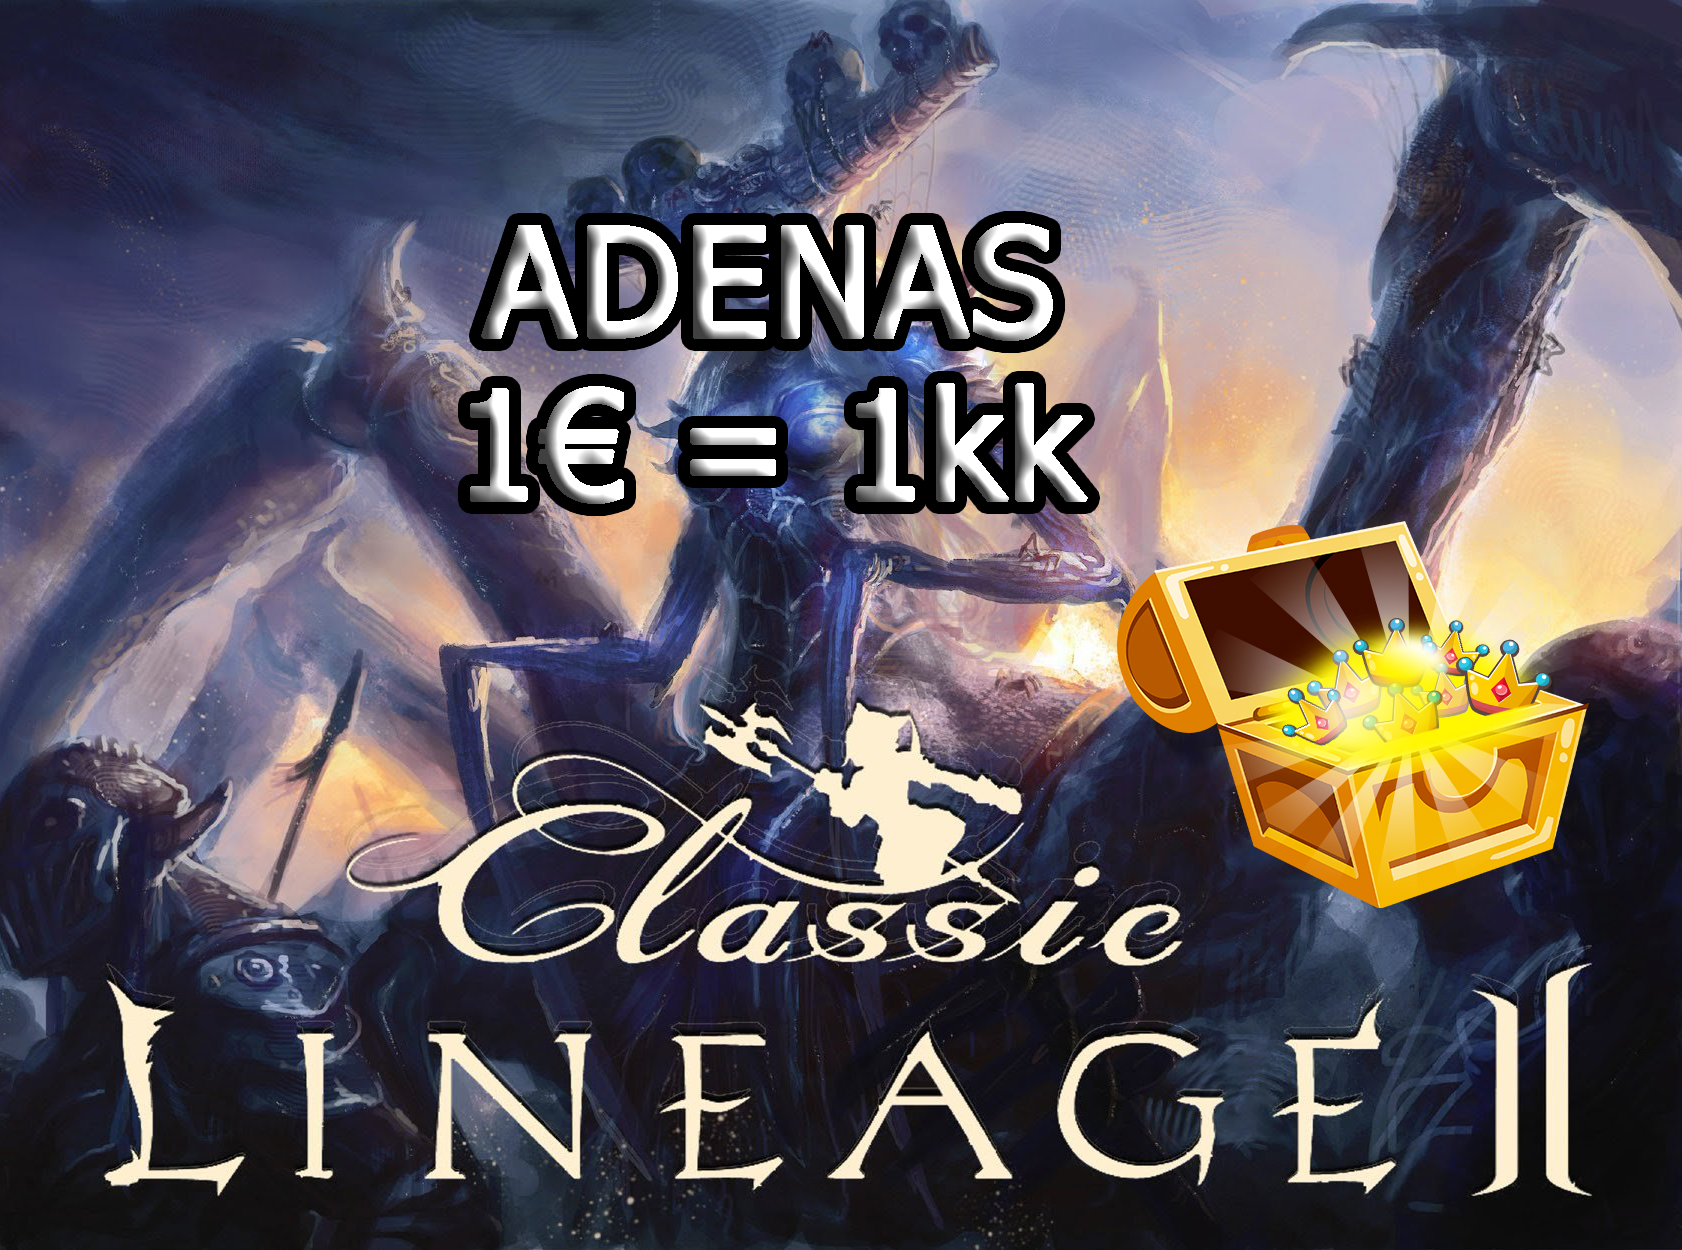 Lineage 2 Classic - Skelth Adenas 0.7€ =1kk  , Big Stock , cheap and fast